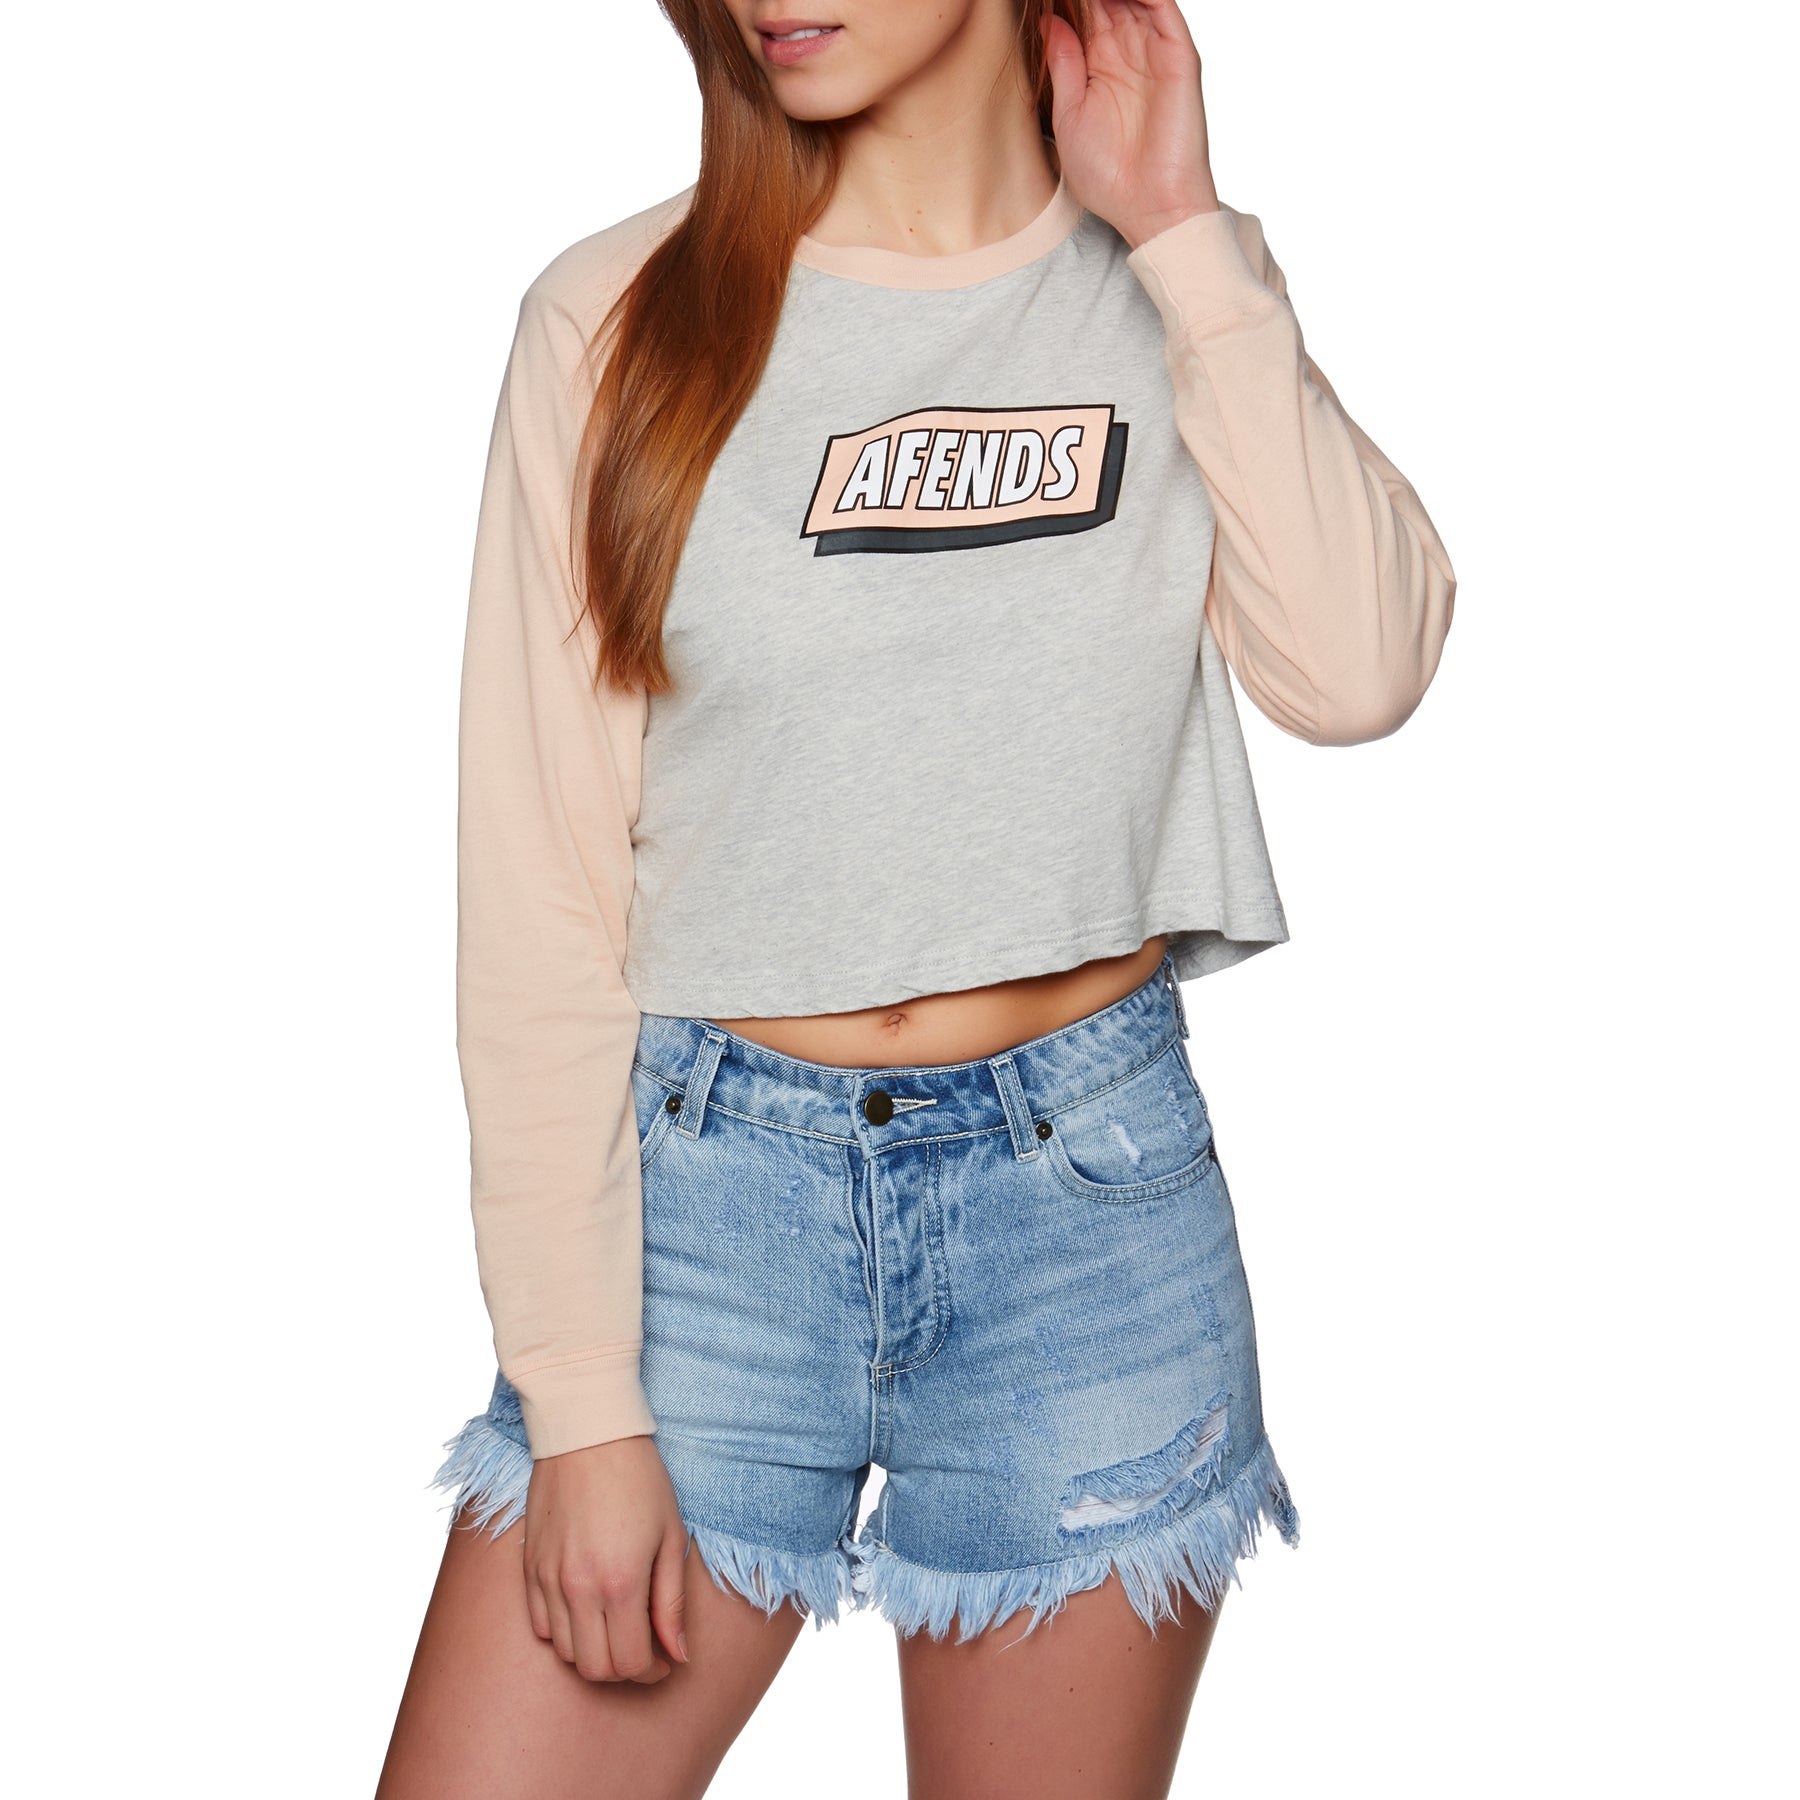 Afends Nicks Womens Long Sleeve T-Shirt - Grey Marle Washed Peach